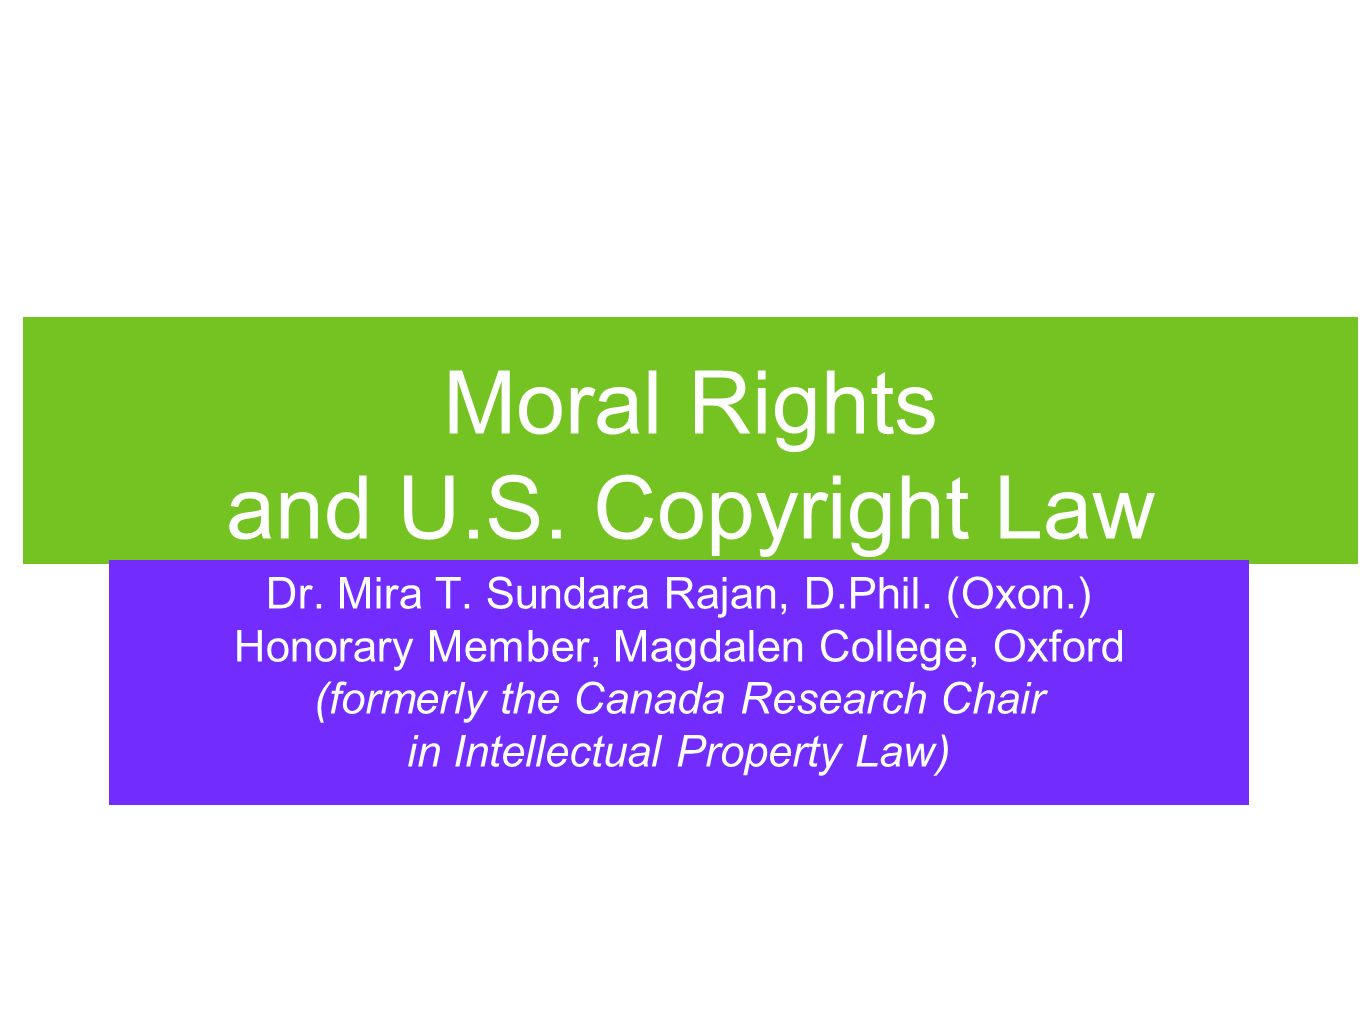 Moral Rights and U.S. Copyright Law Dr. Mira T. Sundara Rajan, D.Phil. (Oxon.) Honorary Member, Magdalen College, Oxford (formerly the Canada Research